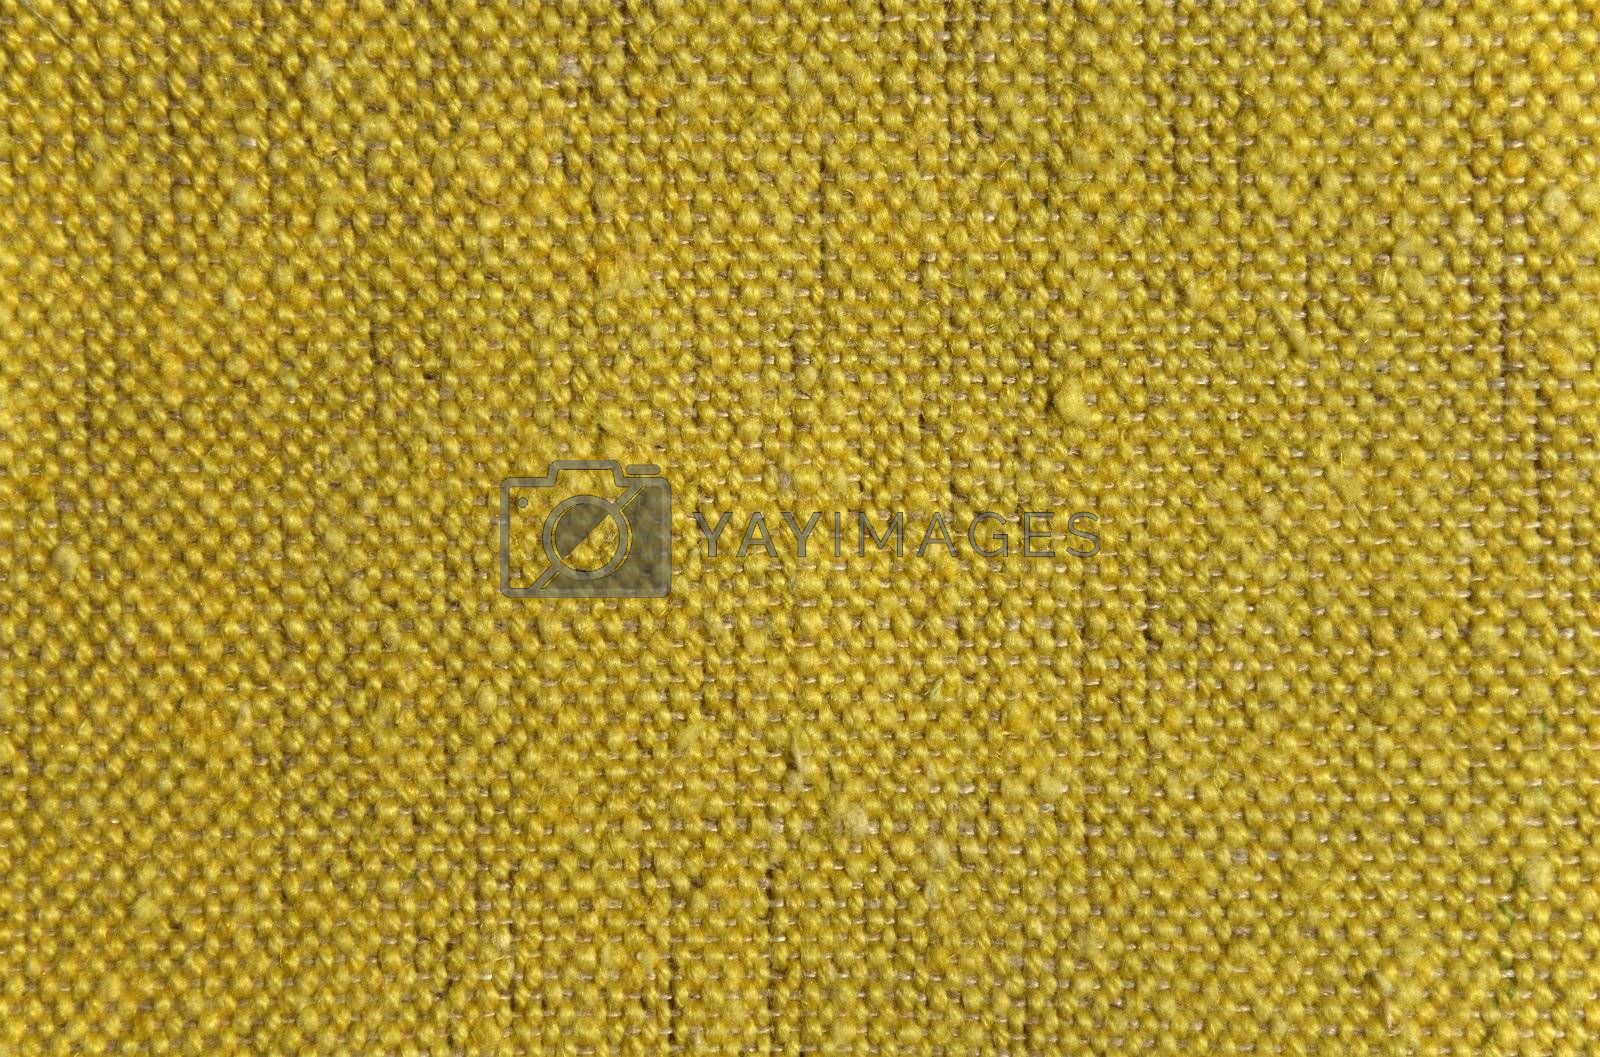 Royalty free image of Rustic linen fabric background by anikasalsera